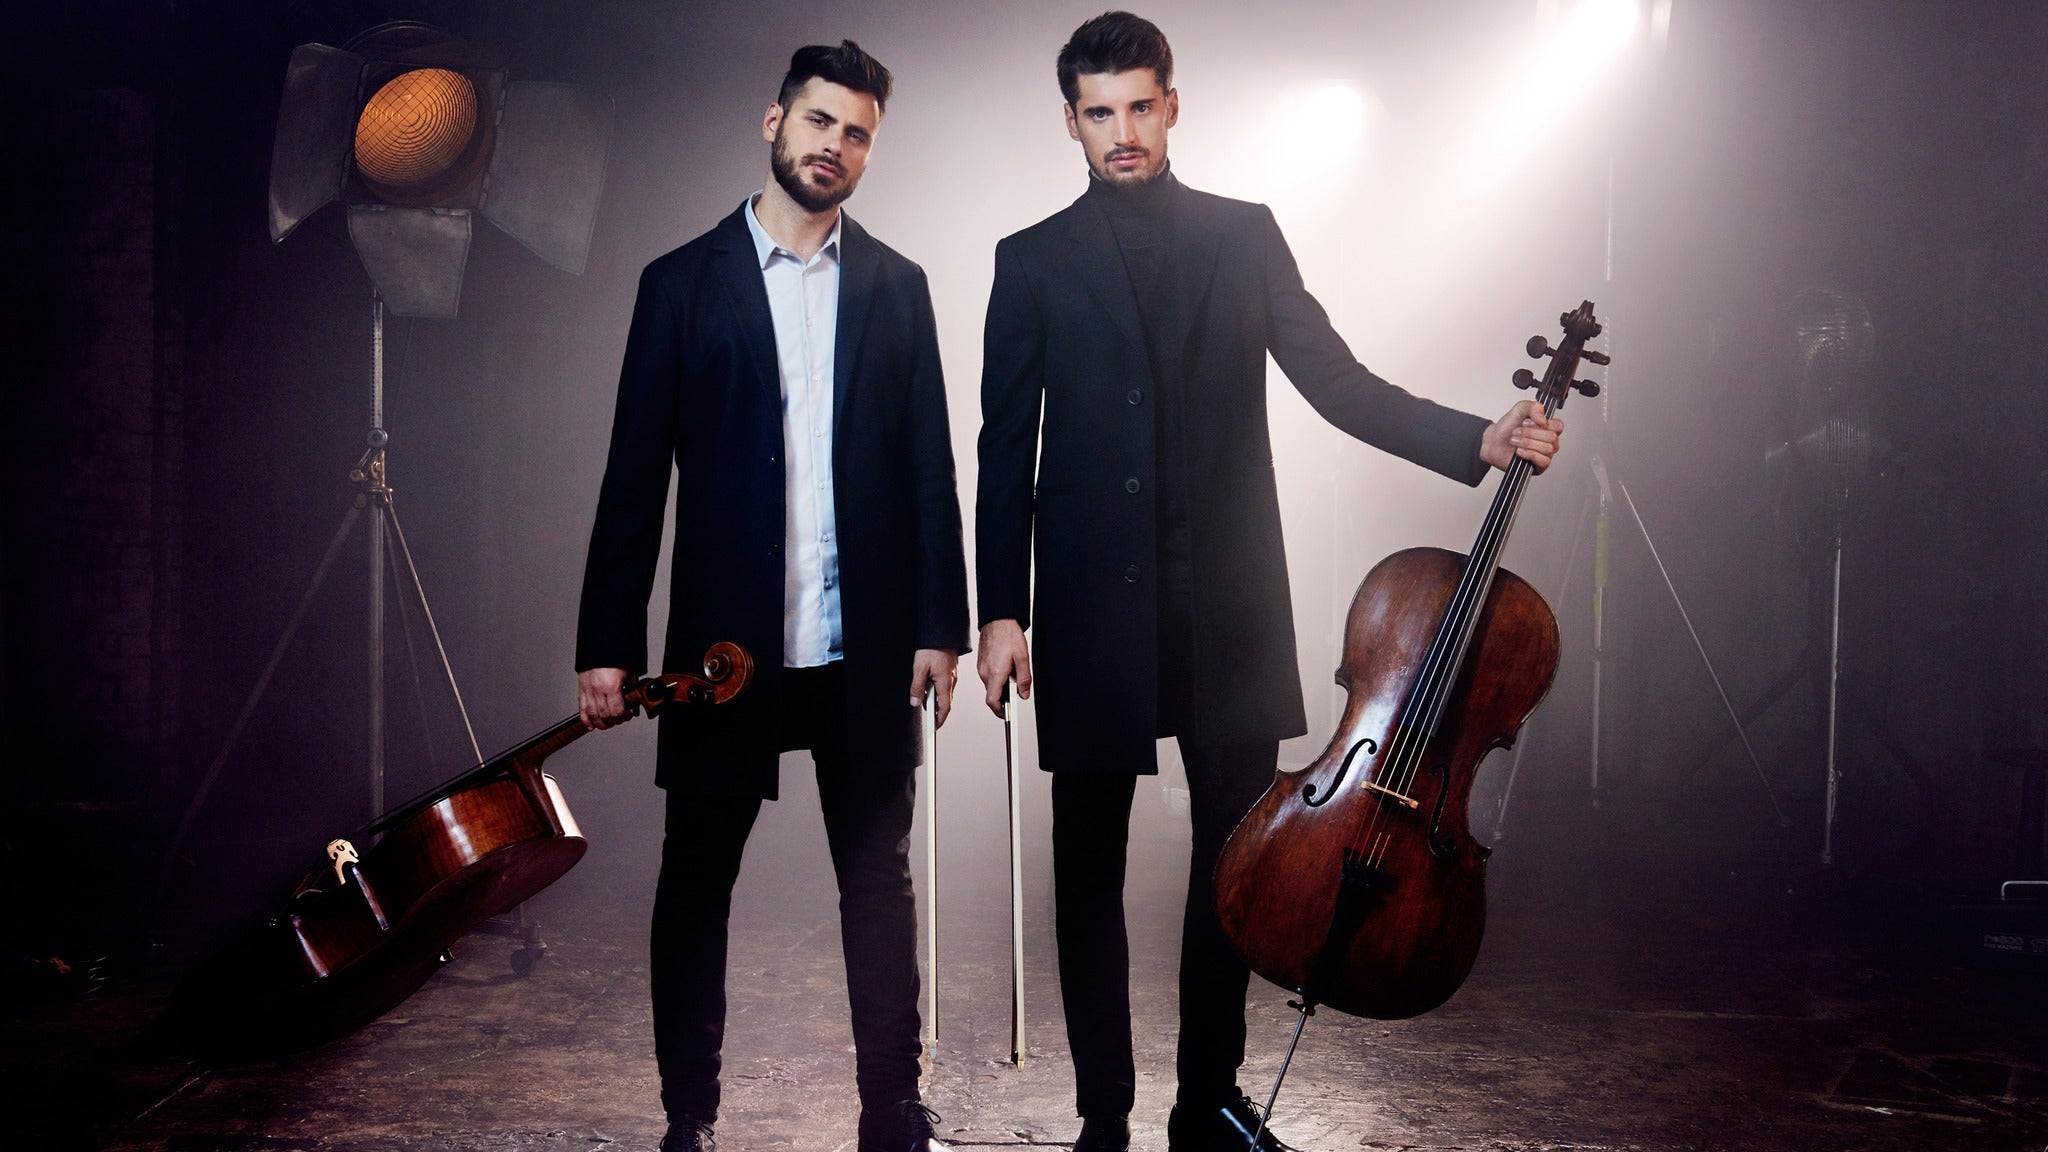 2Cellos at Murat Theatre at Old National Centre